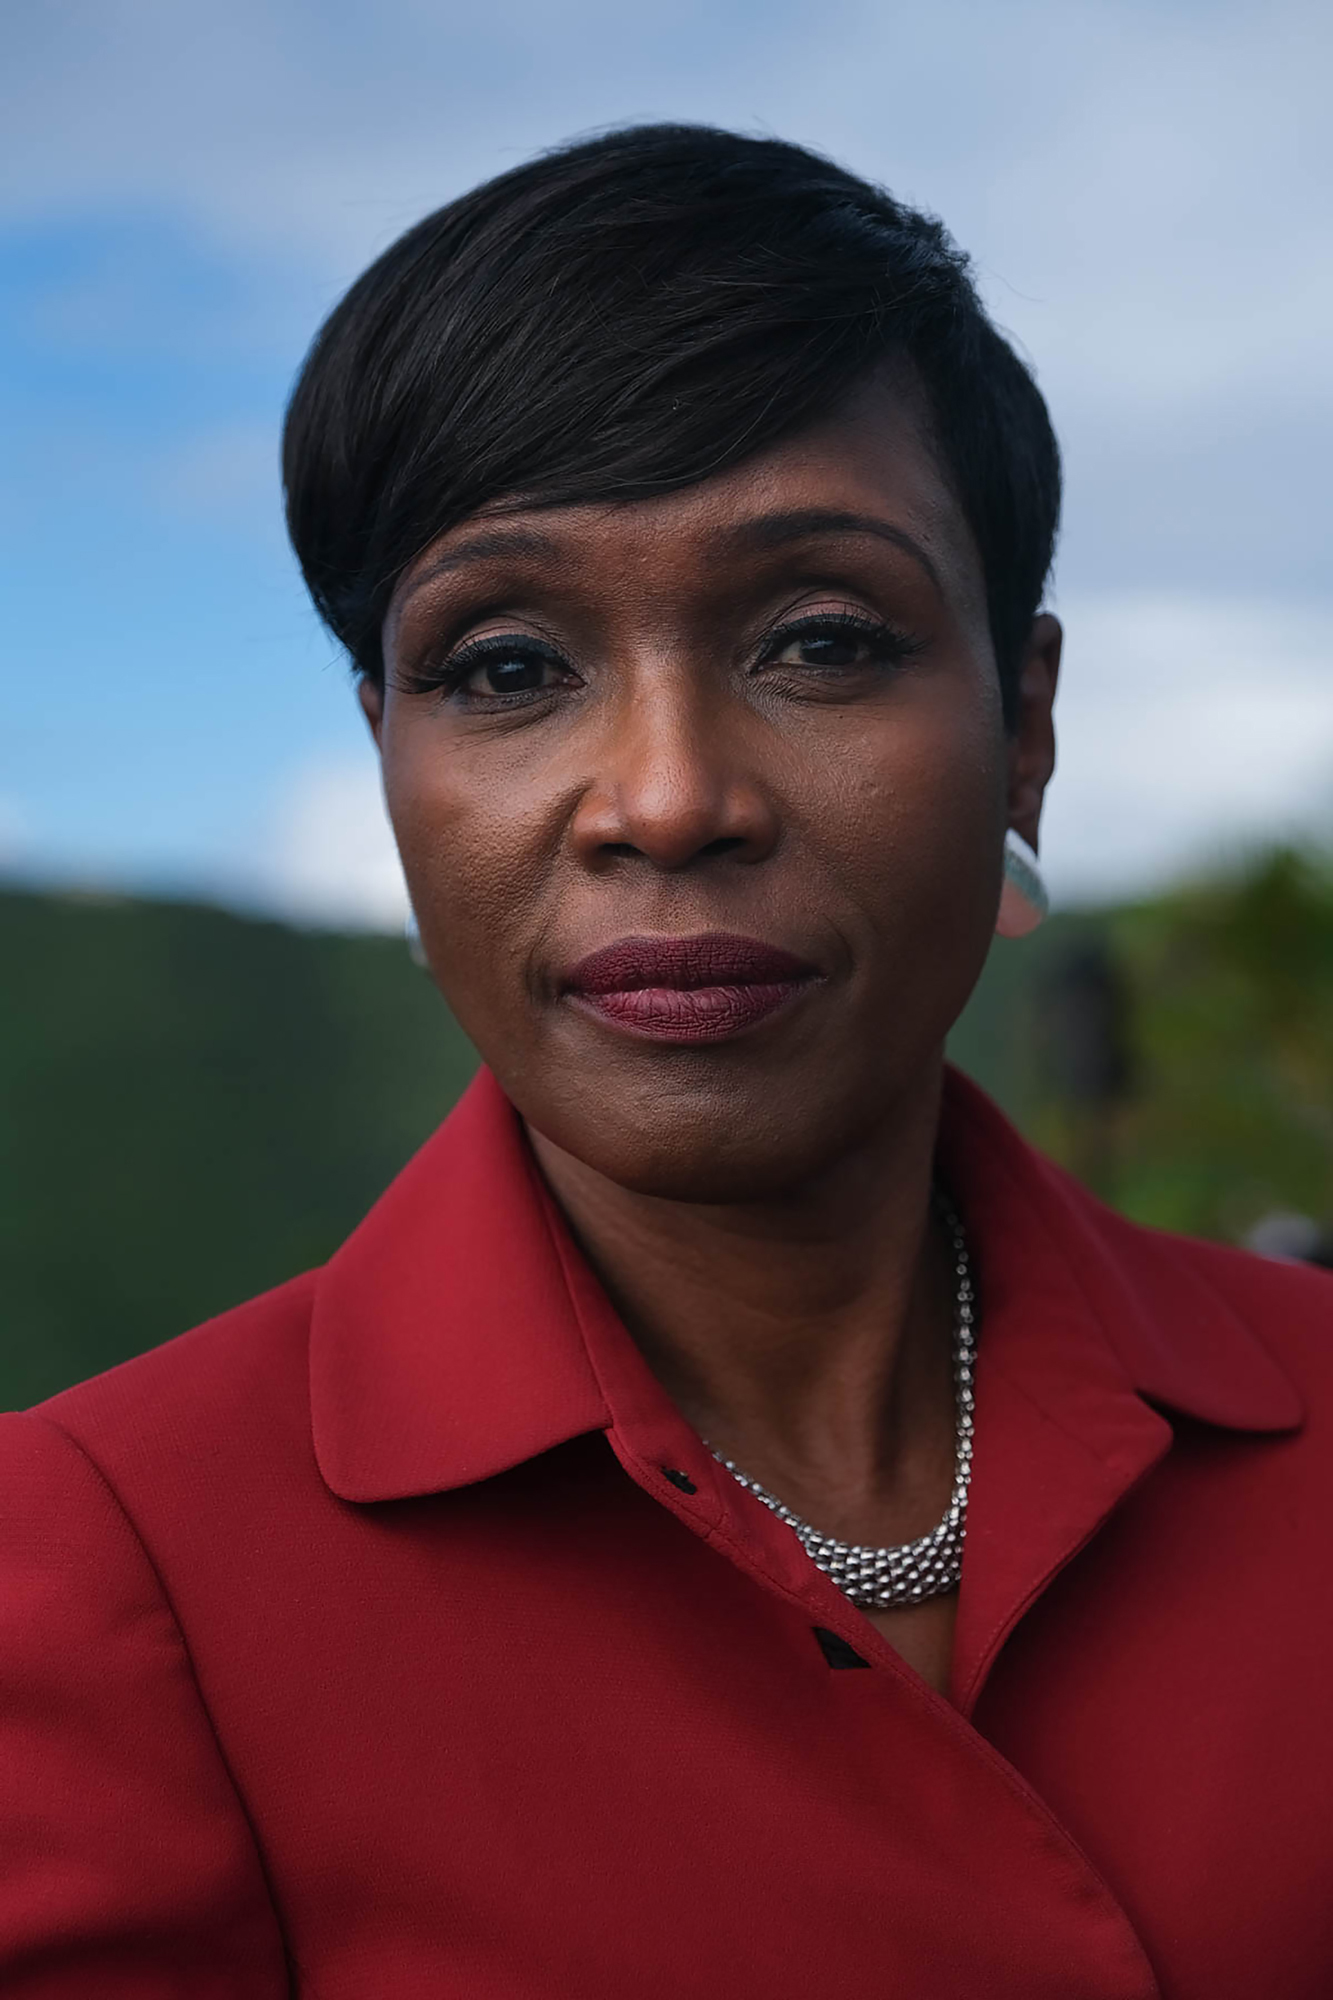 Denise N. George, the attorney general of the Virgin Islands, in St. Thomas, Jan. 2, 2020. New evidence shows Jeffrey Epstein sexually abused and trafficked hundreds of young women and girls on his private Caribbean island, some as recently as 2018, significantly expanding the scope of his alleged conduct, a top law enforcement official said in a lawsuit filed by George on January 15th, 2020.